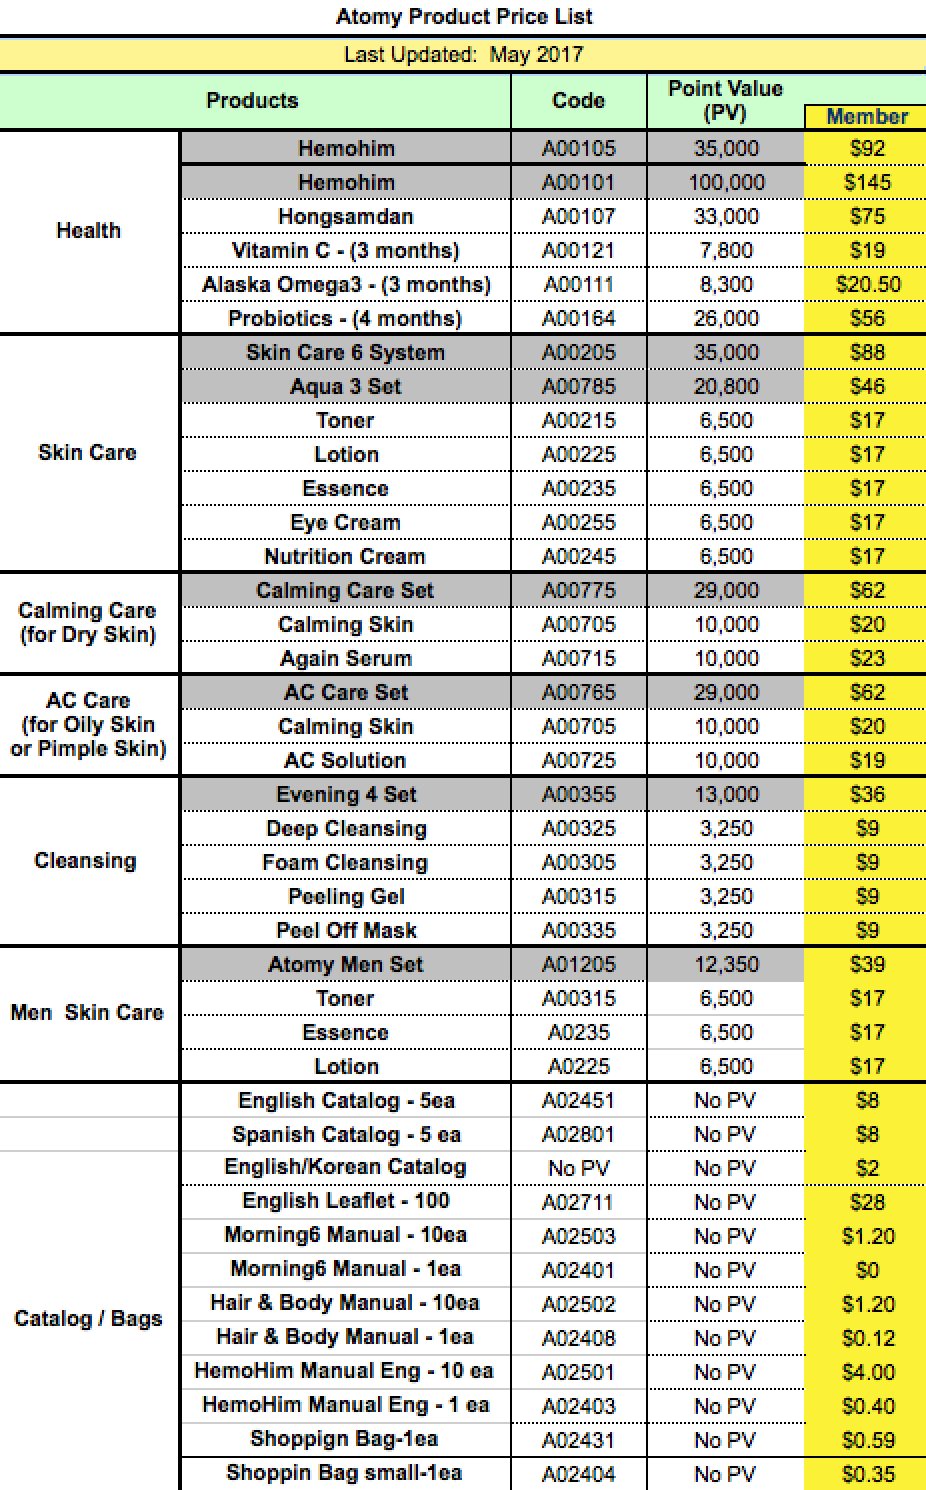 Atomy England Price List Atomysmart